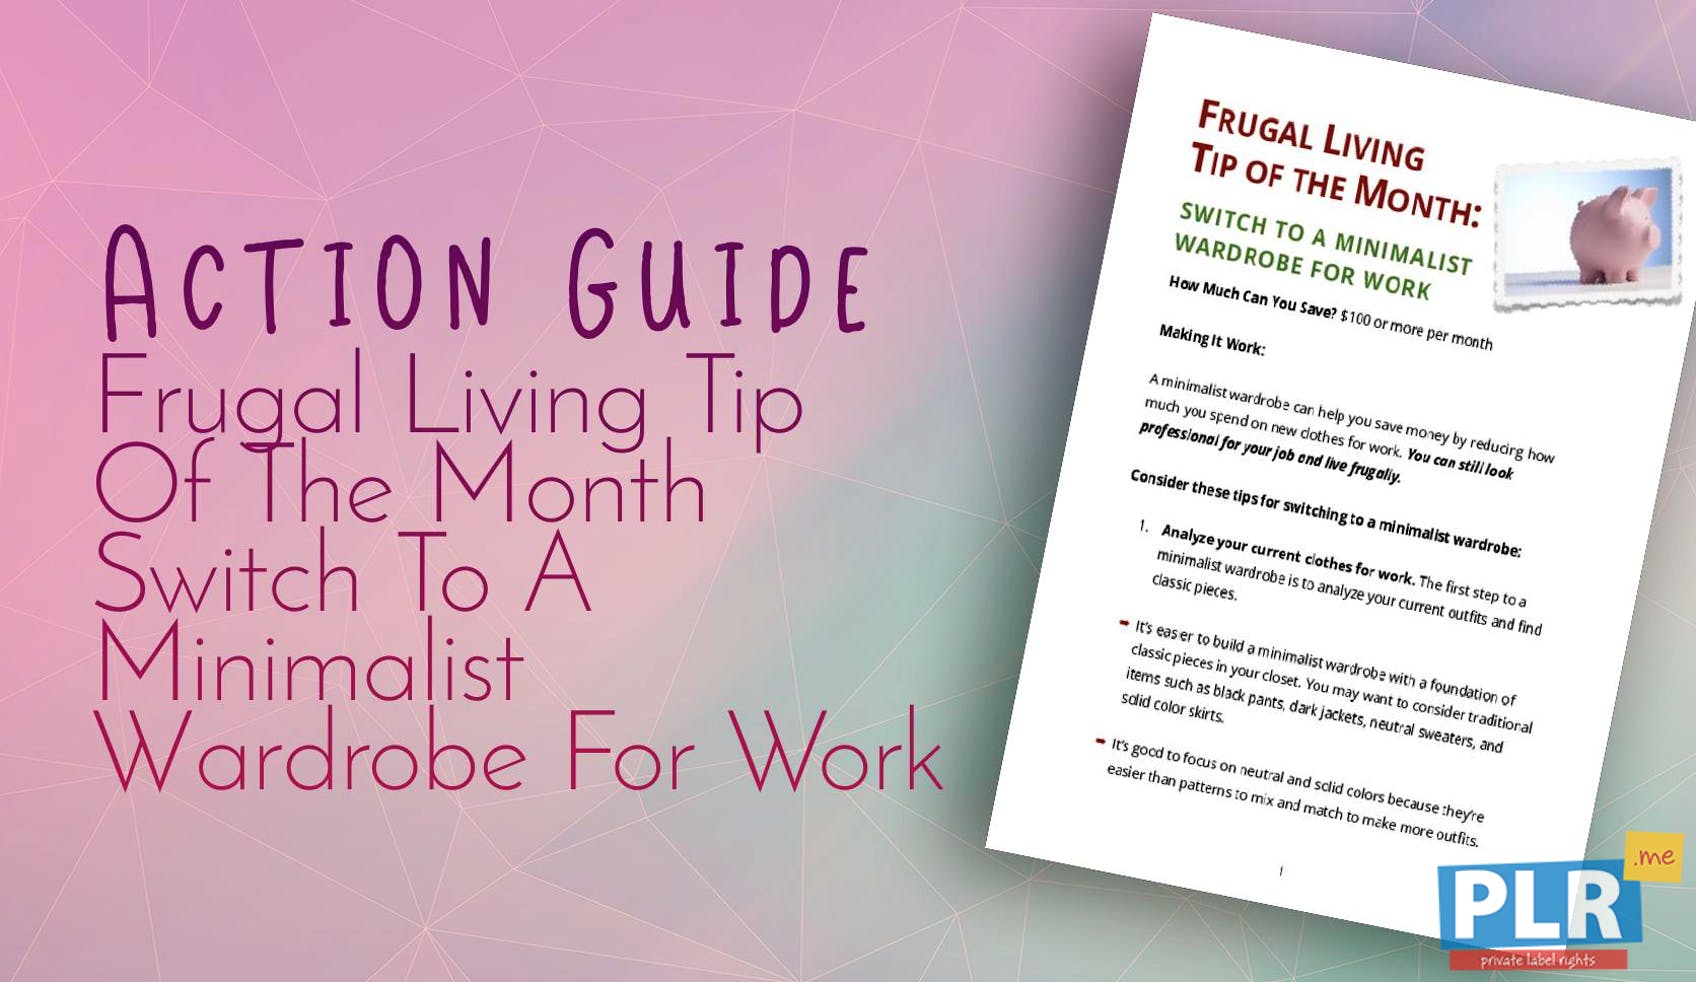 Frugal Living Tip Of The Month Switch To A Minimalist Wardrobe For Work